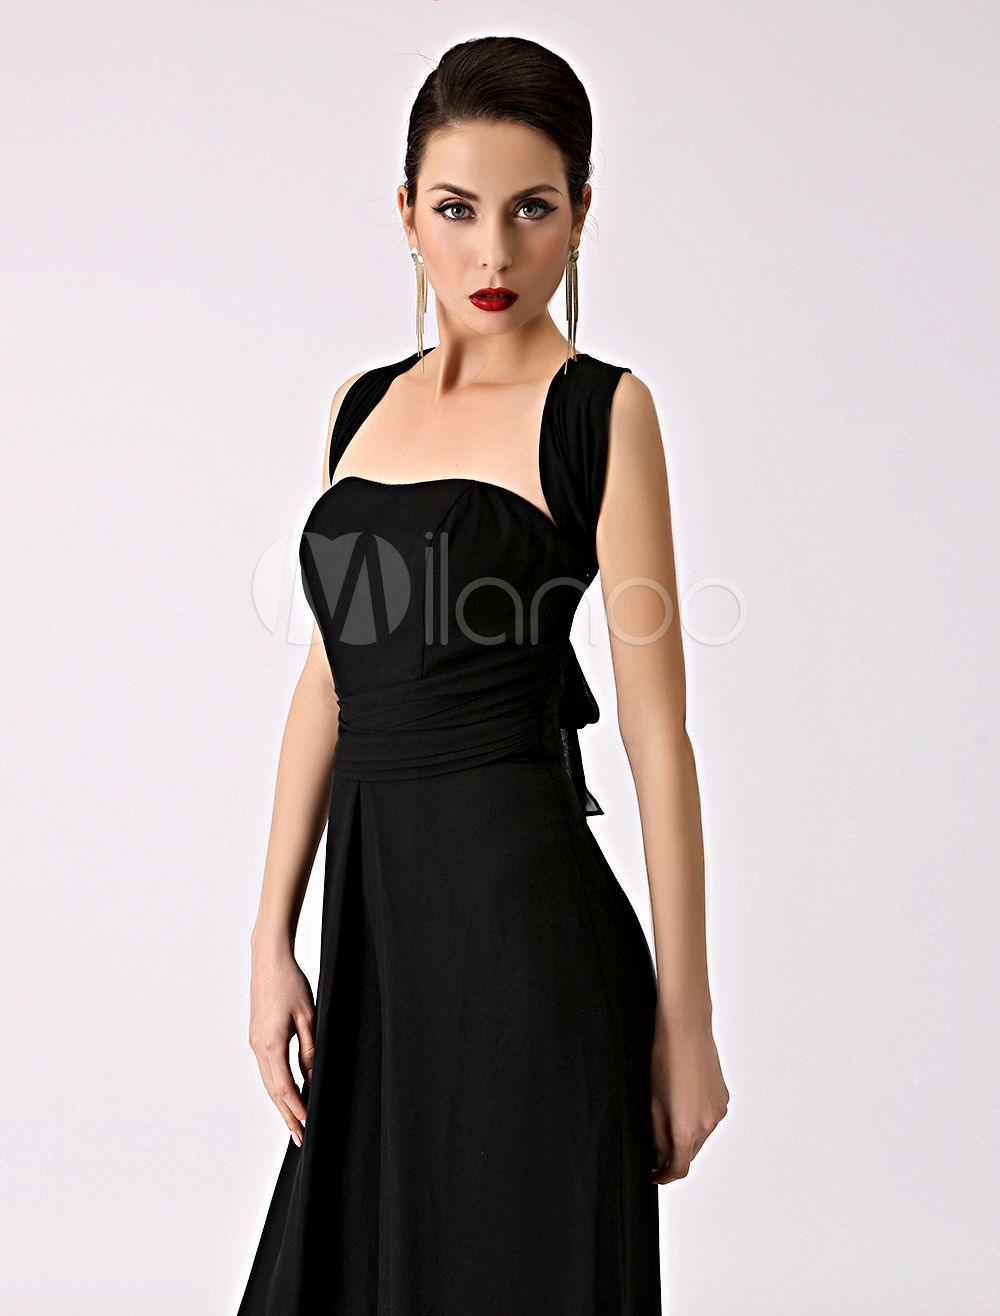 Black Bridesmaid Jumpsuit Straps convertible Backless Chiffon Wide Leg Pants Milanoo #bridesmaidjumpsuits Black Bridesmaid Jumpsuit Straps convertible Backless Chiffon Wide Leg Pants Milanoo #bridesmaidjumpsuits Black Bridesmaid Jumpsuit Straps convertible Backless Chiffon Wide Leg Pants Milanoo #bridesmaidjumpsuits Black Bridesmaid Jumpsuit Straps convertible Backless Chiffon Wide Leg Pants Milanoo #bridesmaidjumpsuits Black Bridesmaid Jumpsuit Straps convertible Backless Chiffon Wide Leg Pants #bridesmaidjumpsuits